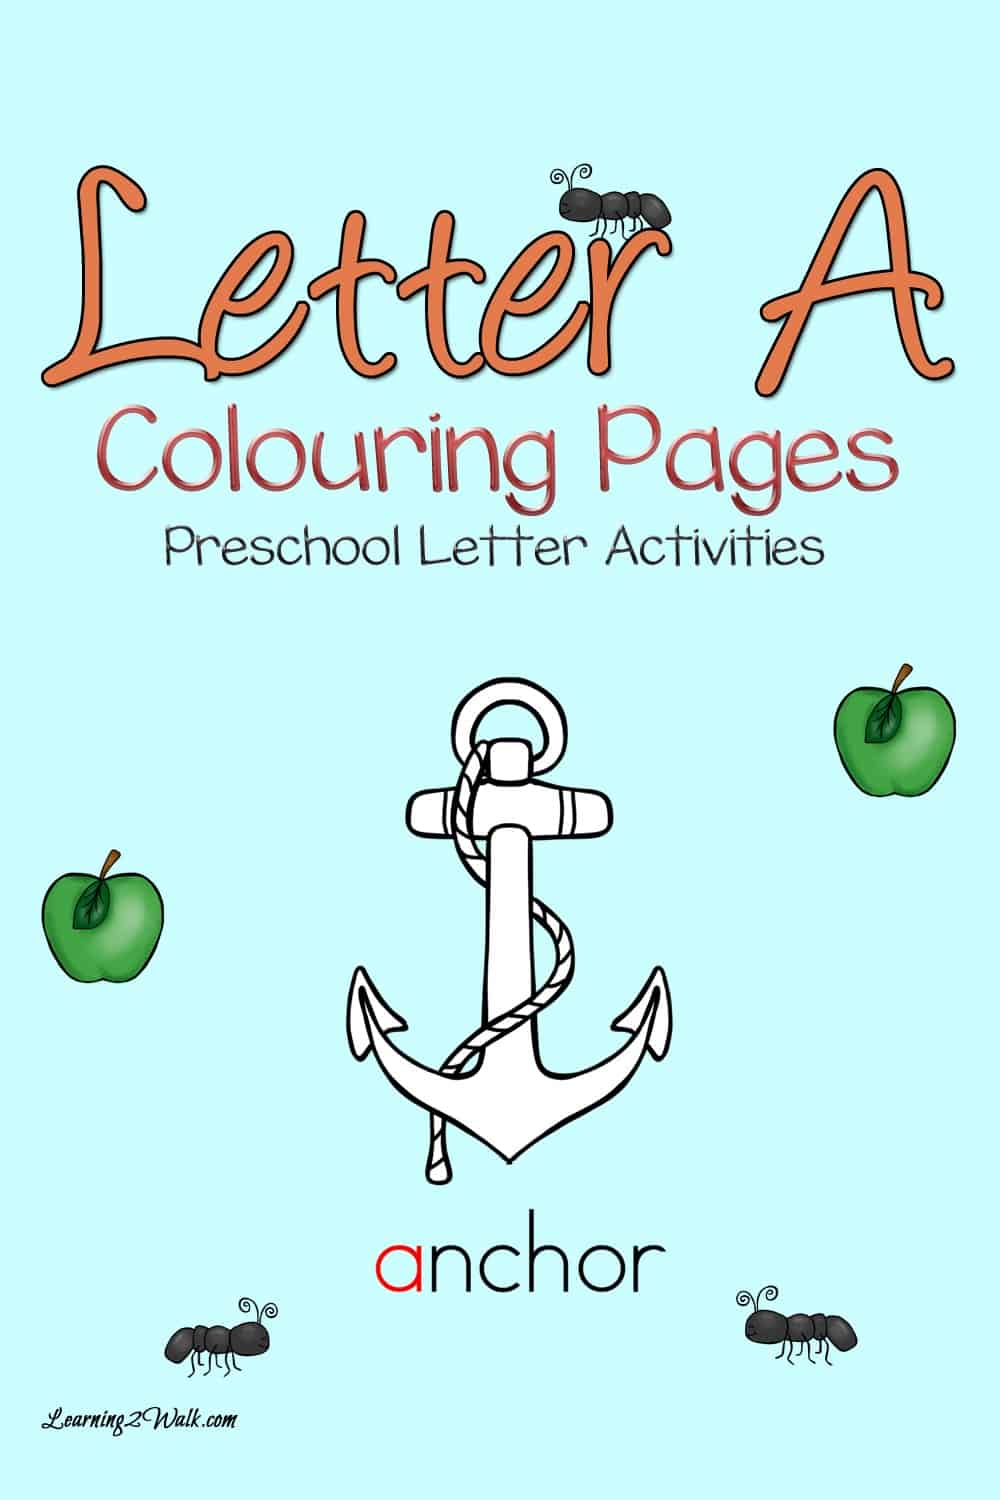 Preschool Letter Activities: Letter A Coloring Pages